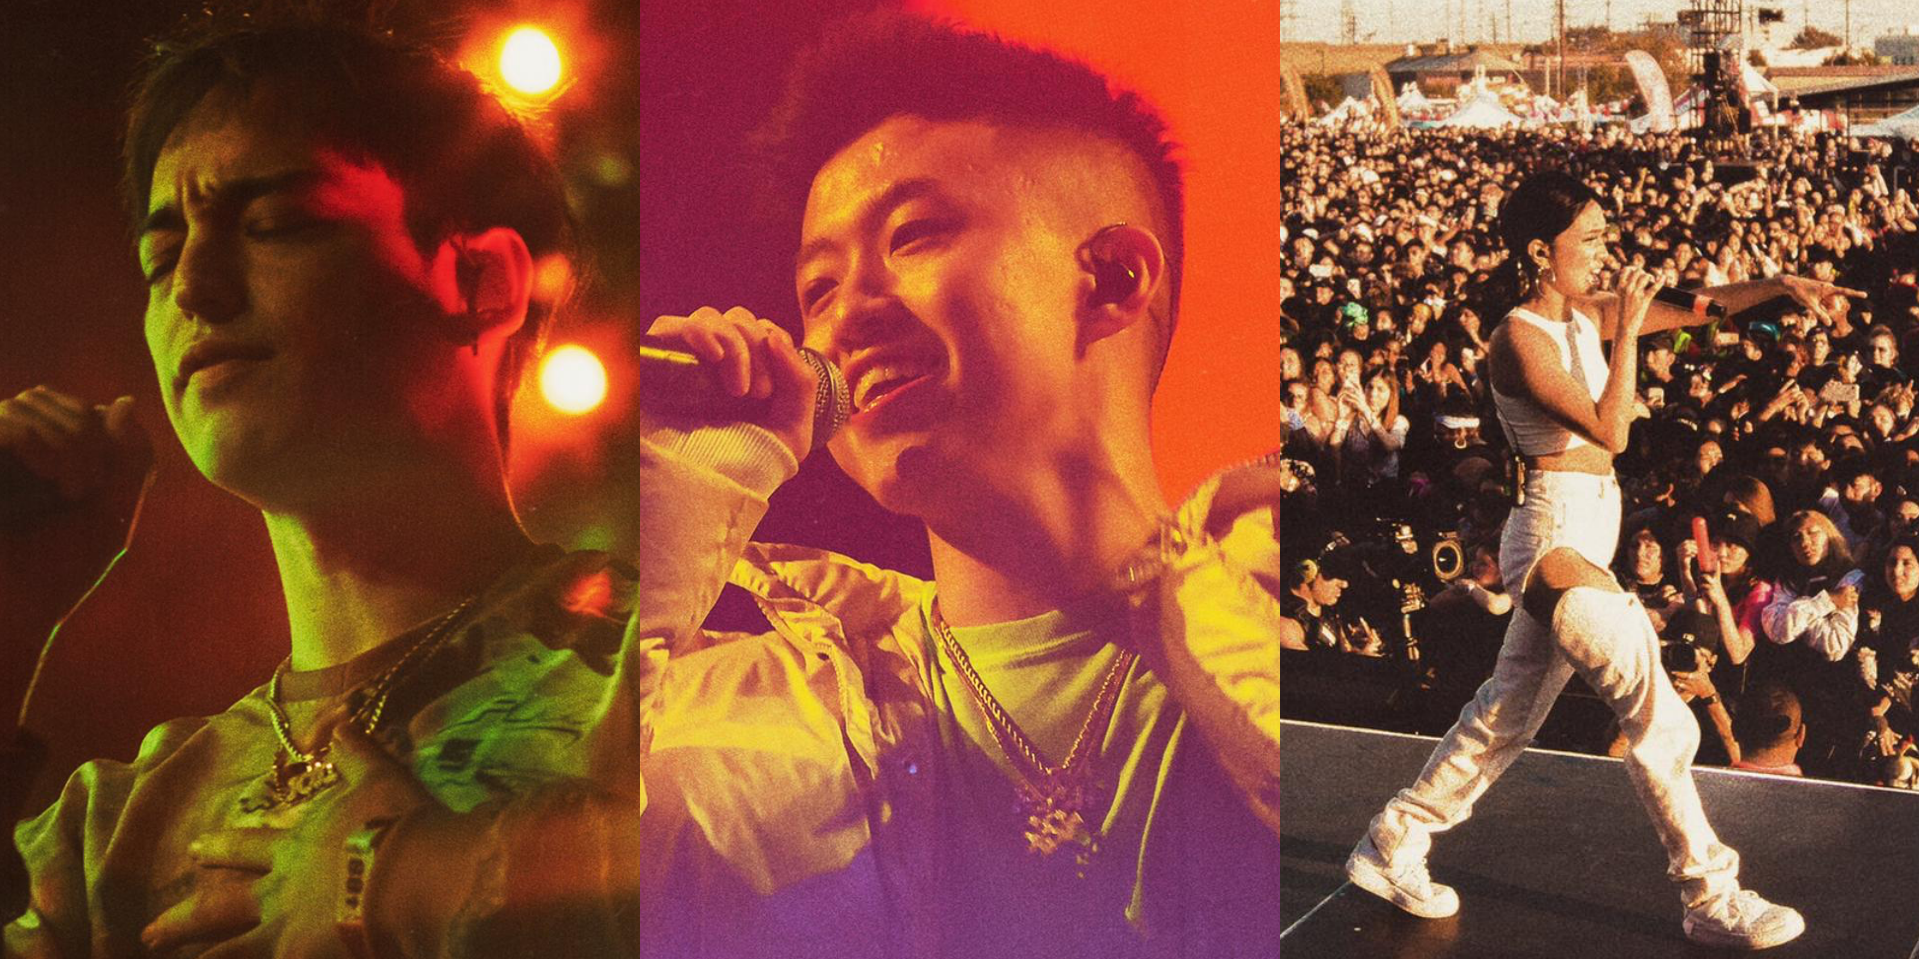 88rising Head in the Clouds Festival will arrive in Jakarta next year, lineup includes Rich Brian, Joji, NIKI and more